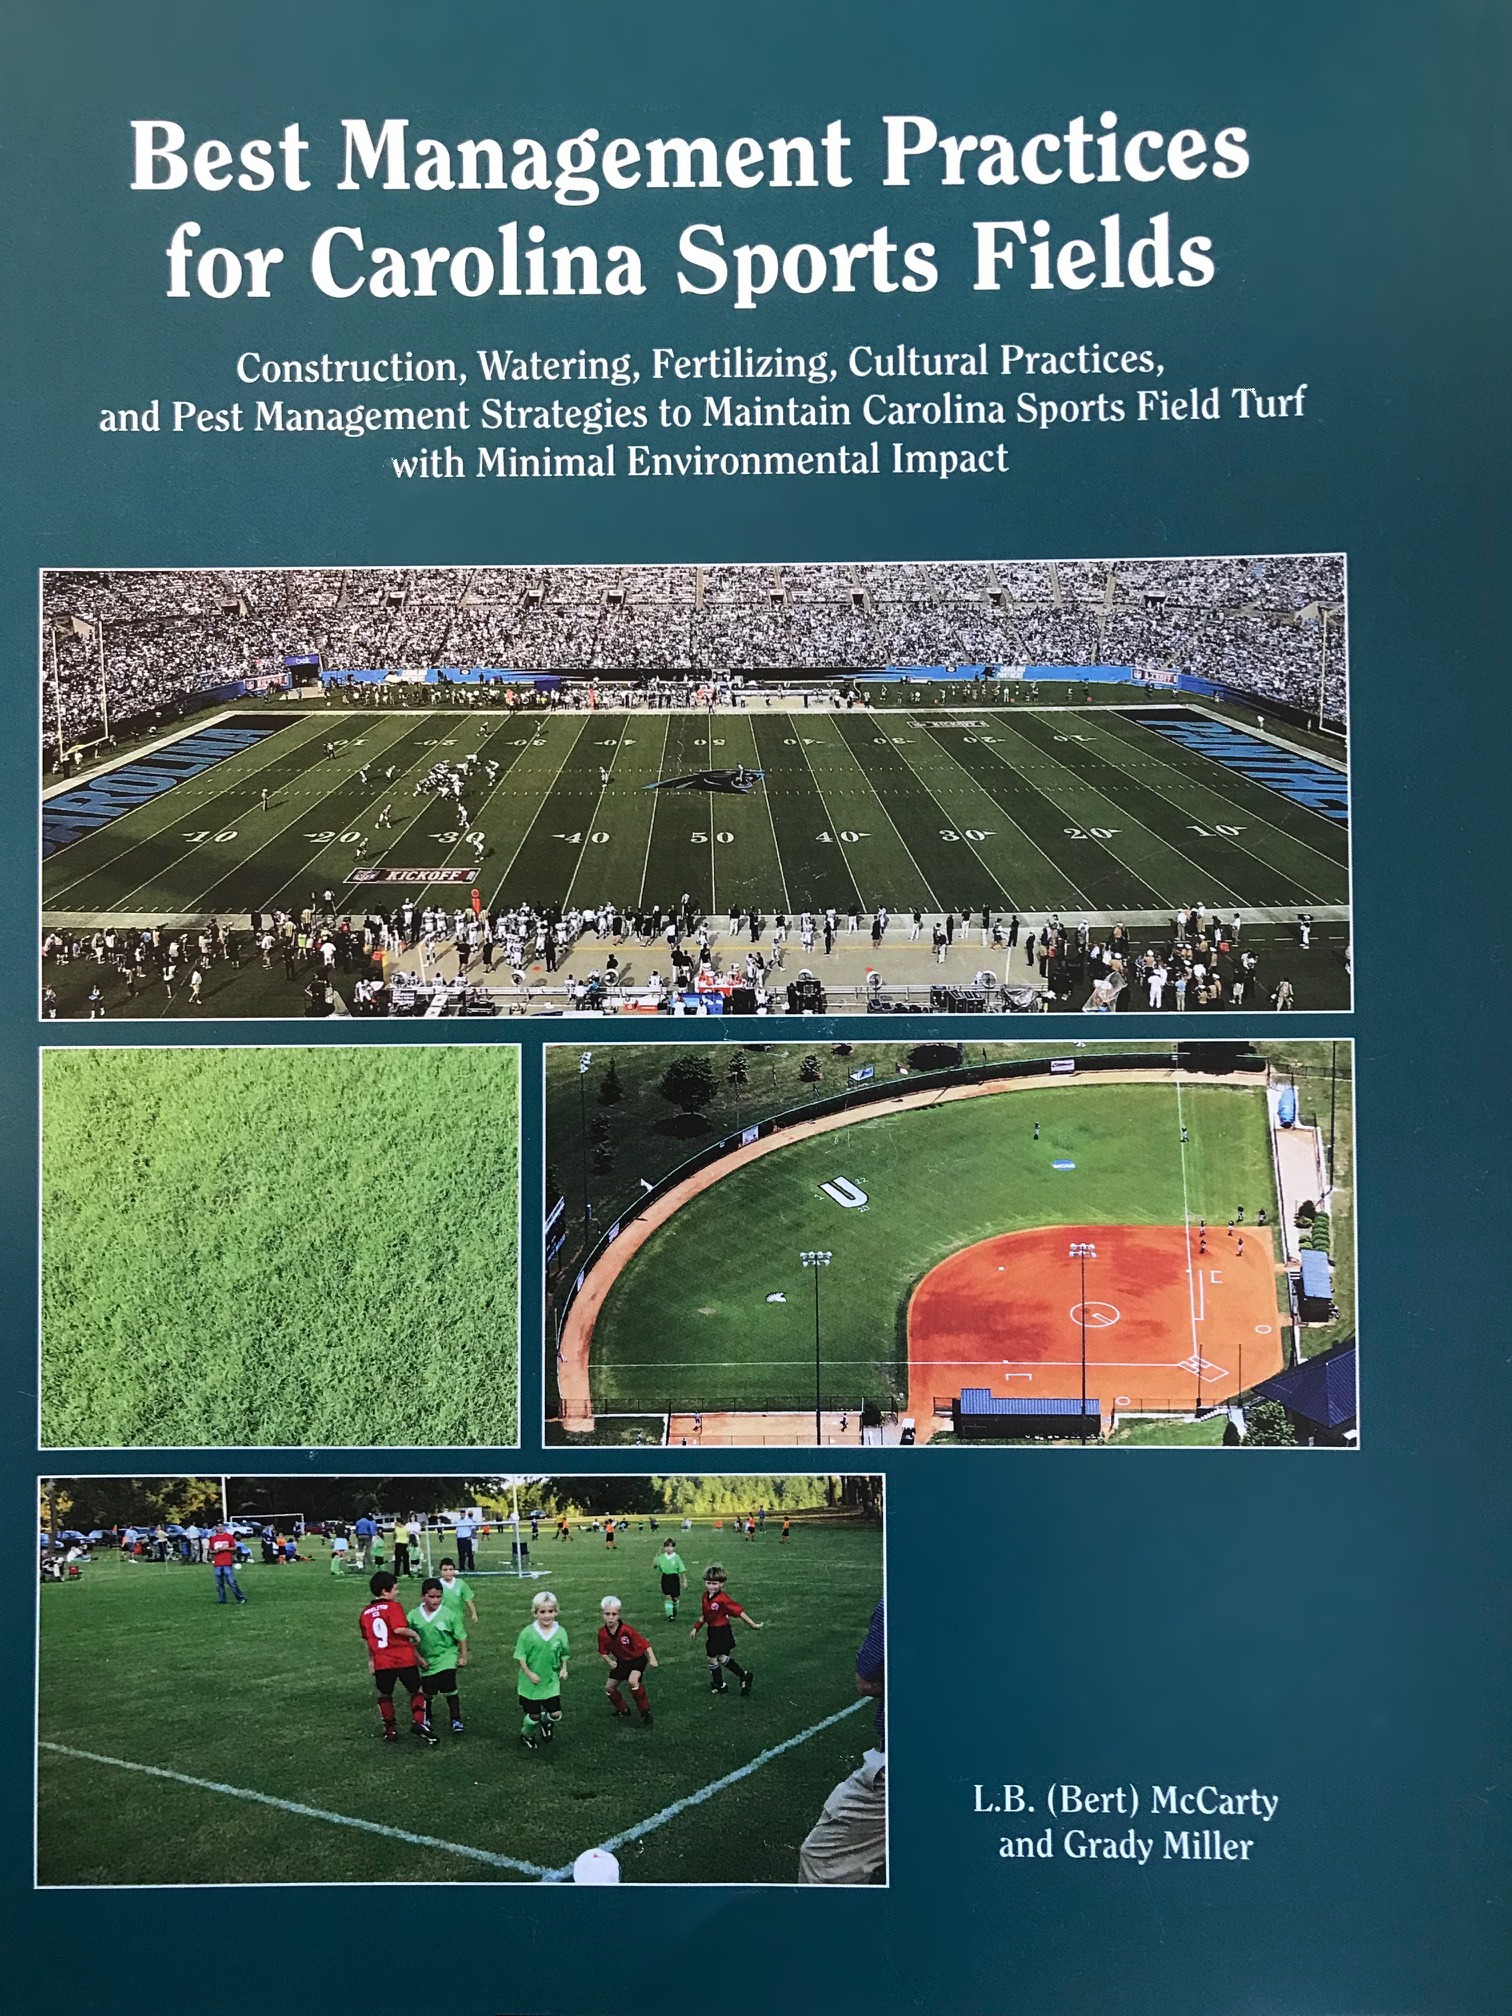 Sports turf management book cover